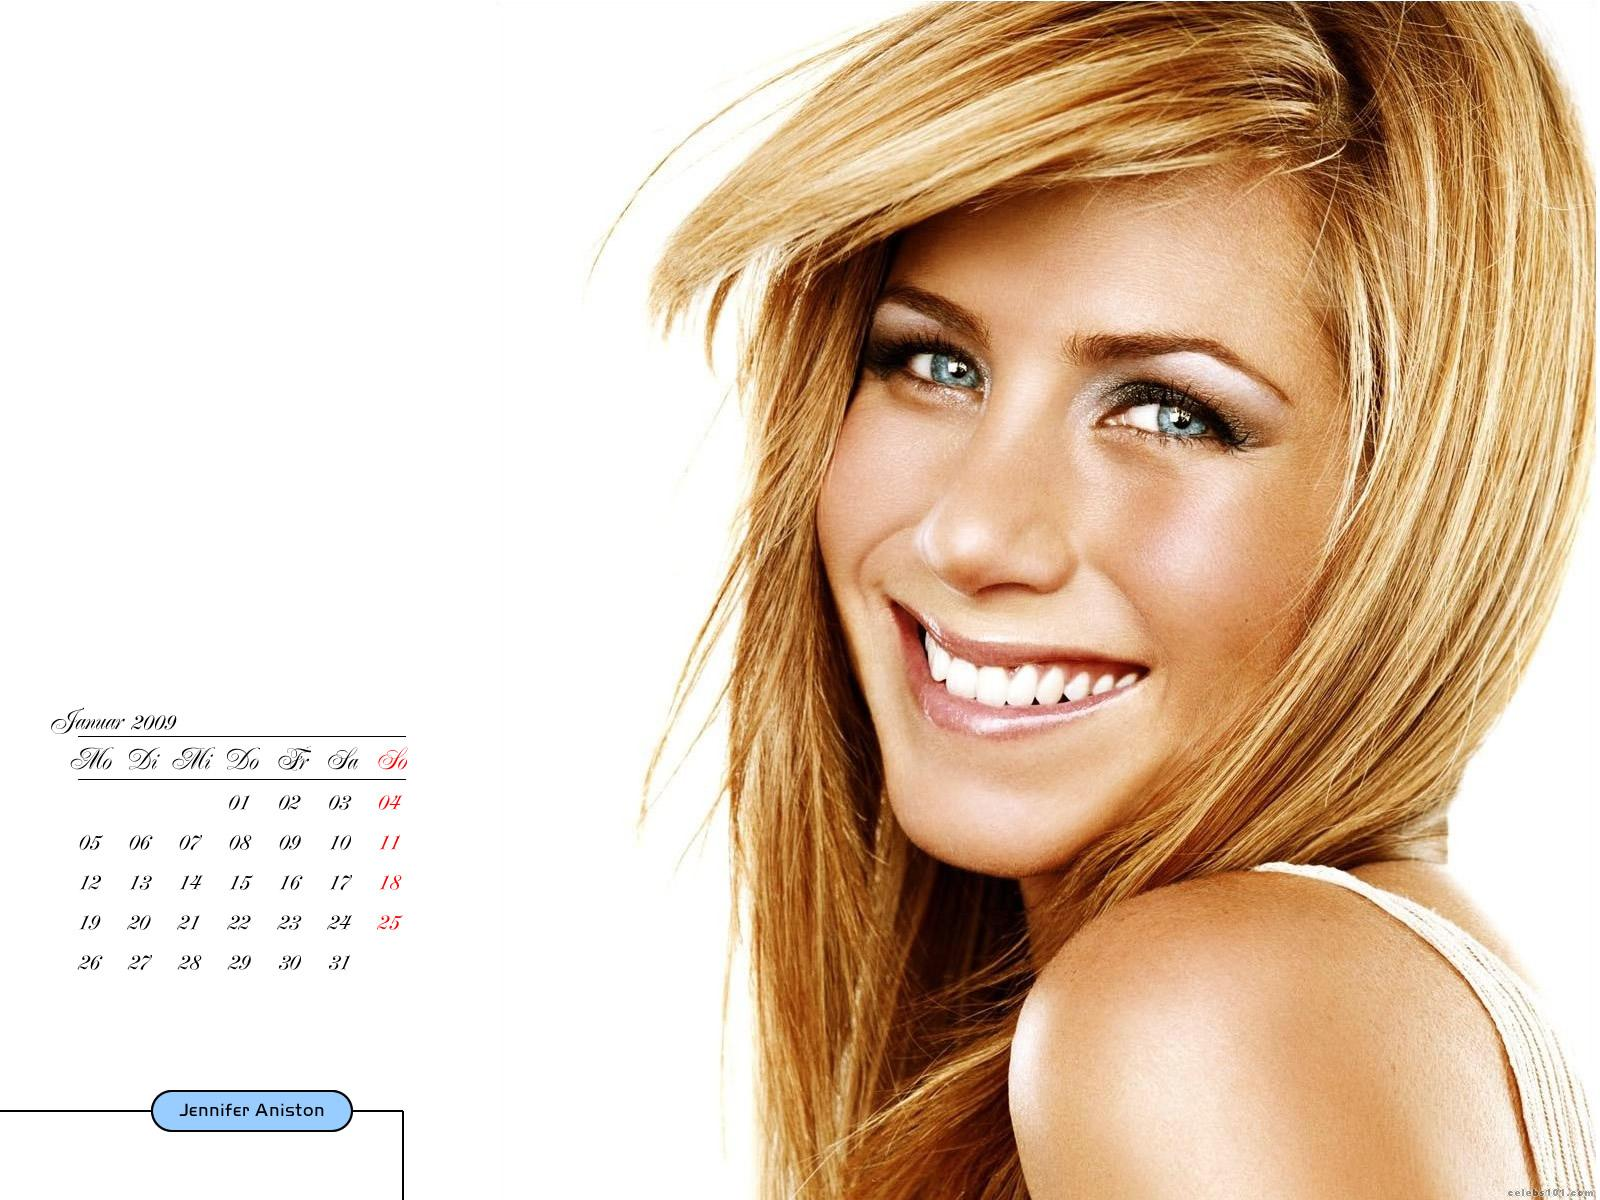 http://1.bp.blogspot.com/_UtNW1JfsC-M/TBFhsEF5liI/AAAAAAAABQU/WYMPwbGqyz4/s1600/Jennifer+Aniston+Wallpapers+Hot+Girls+Inn.jpg+%288%29.jpg